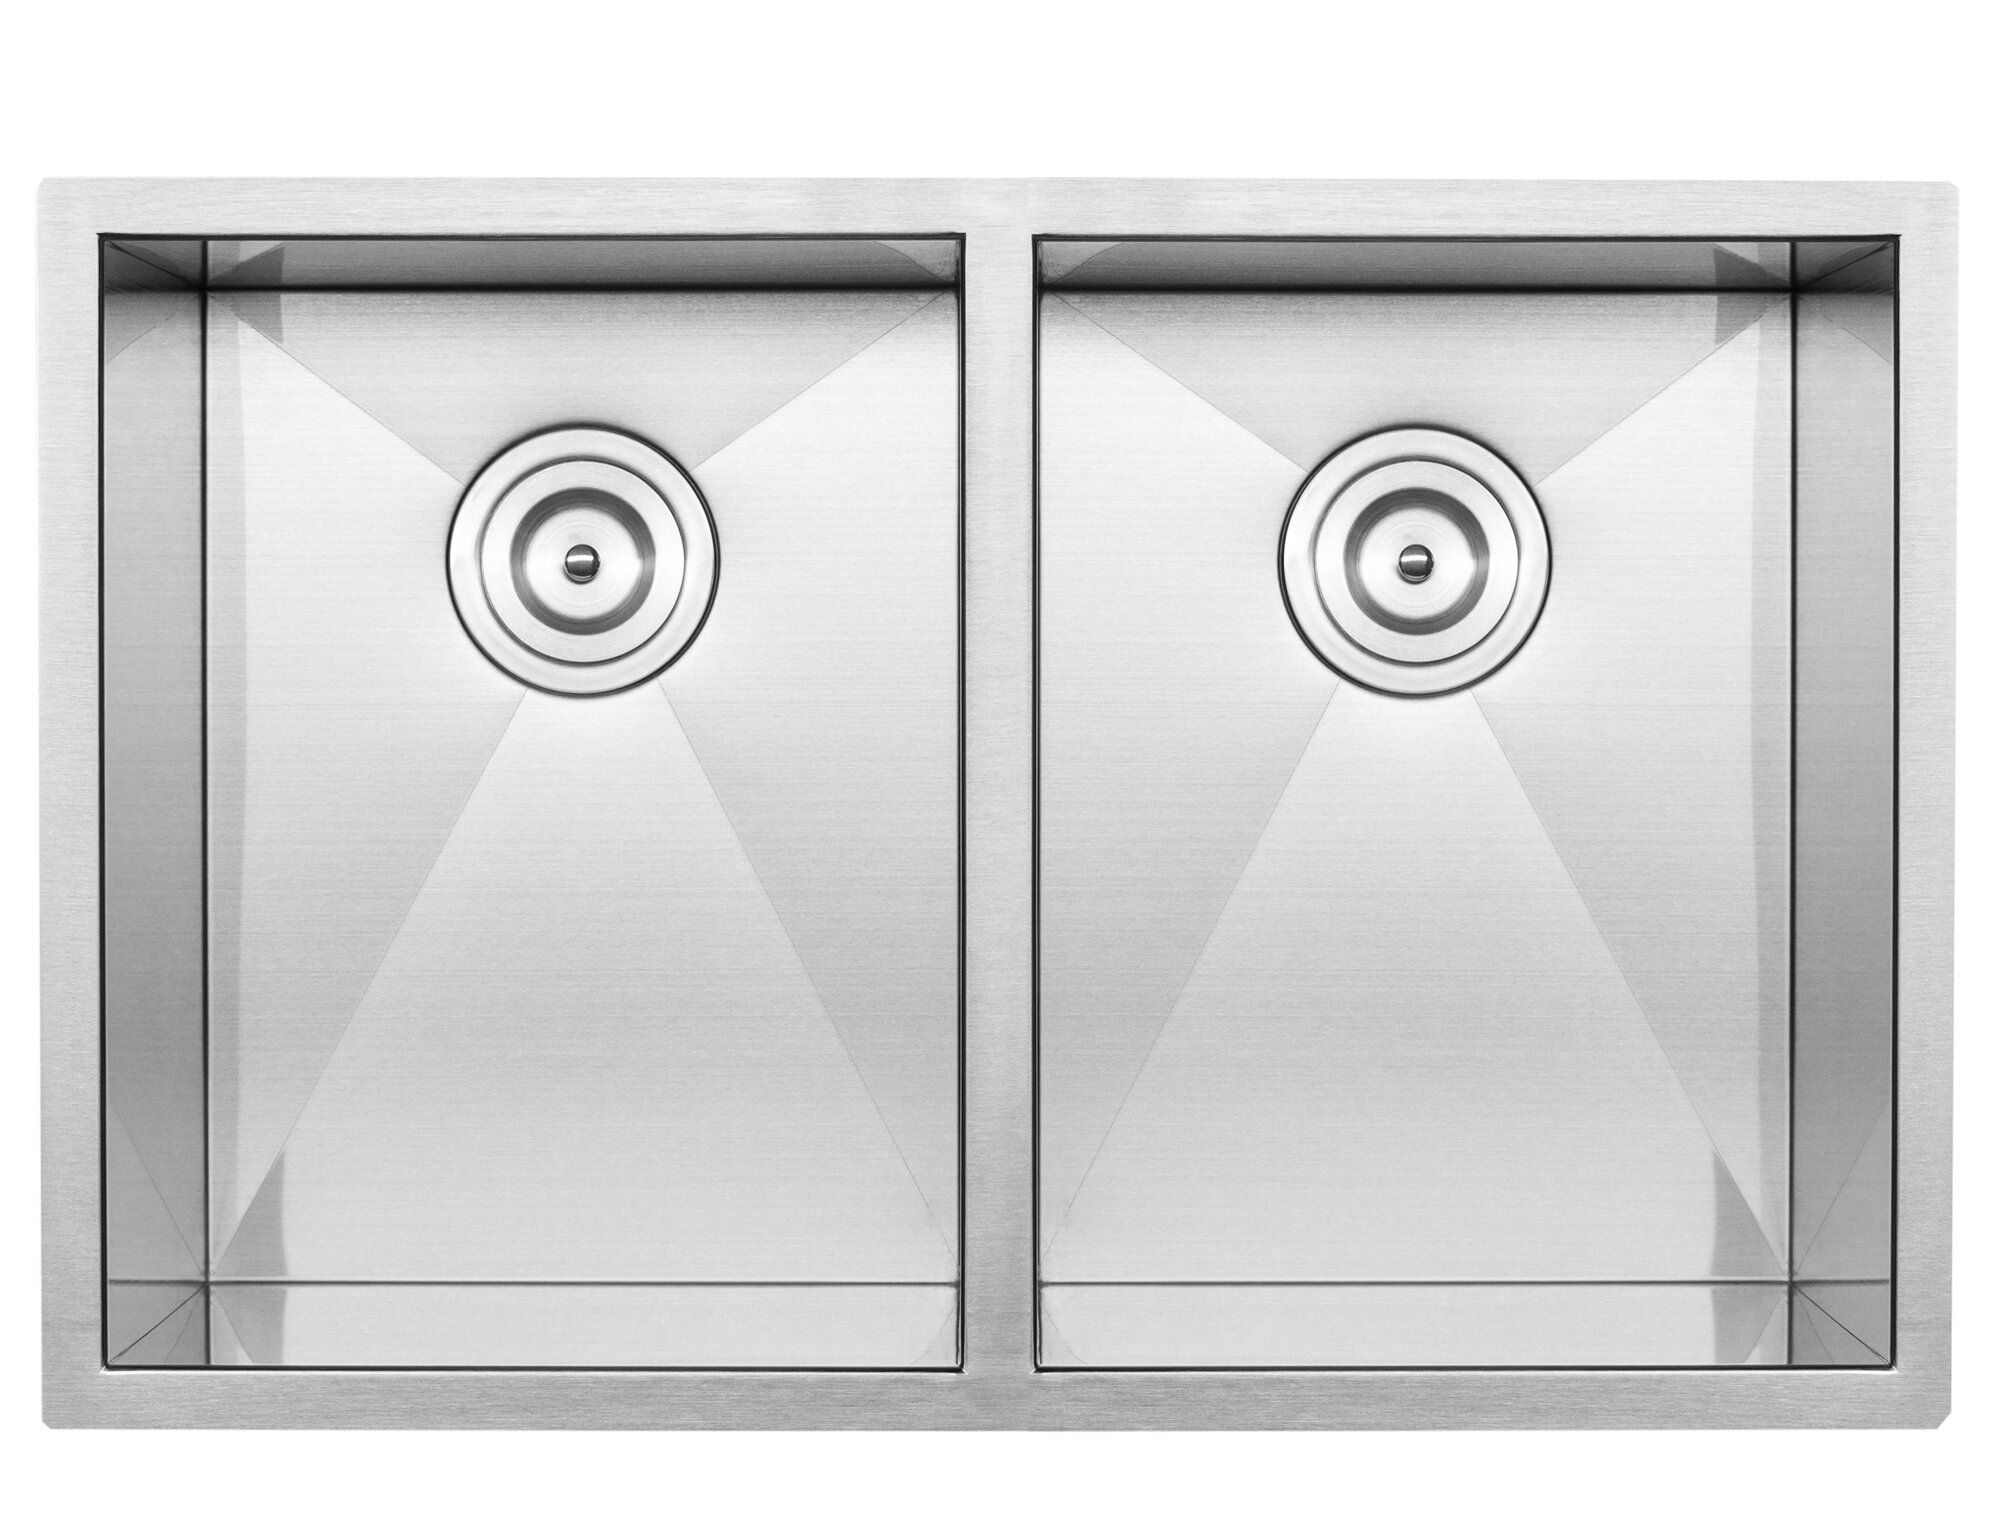 Ticor Sinks Pacific Series 16 Gauge Stainless Steel 29 L X 19 W Double Basin Undermount Kitchen Sink Wayfair